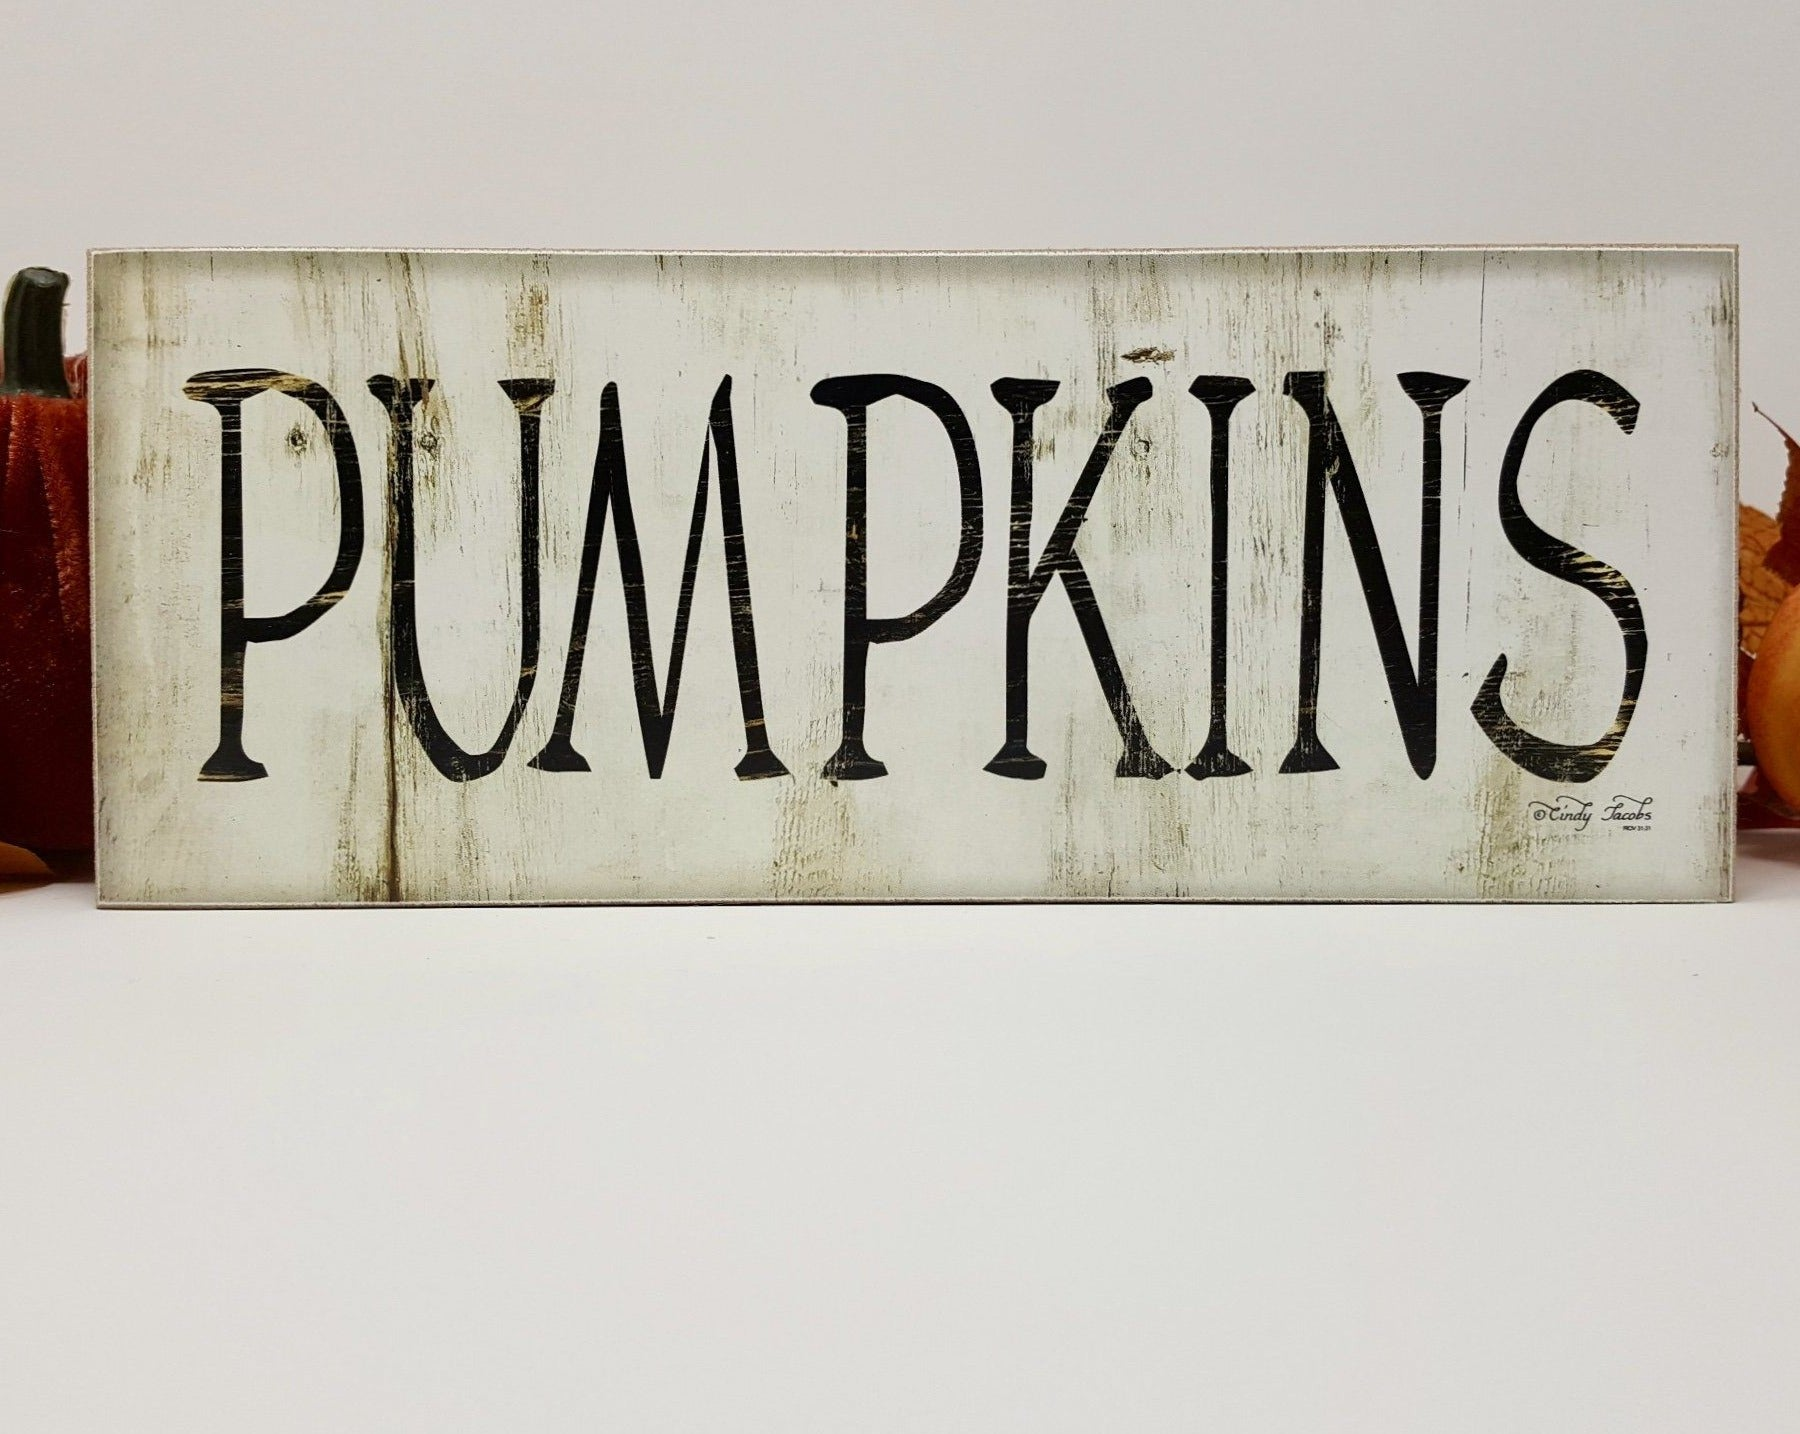 Autumn Decorations, White Pumpkins, Rustic Pumpkin Sign, Rustic Fall Decor, Pumpkin Decorating Ideas, Pumpkin Patch Sign, Fall Farmhouse Decorating